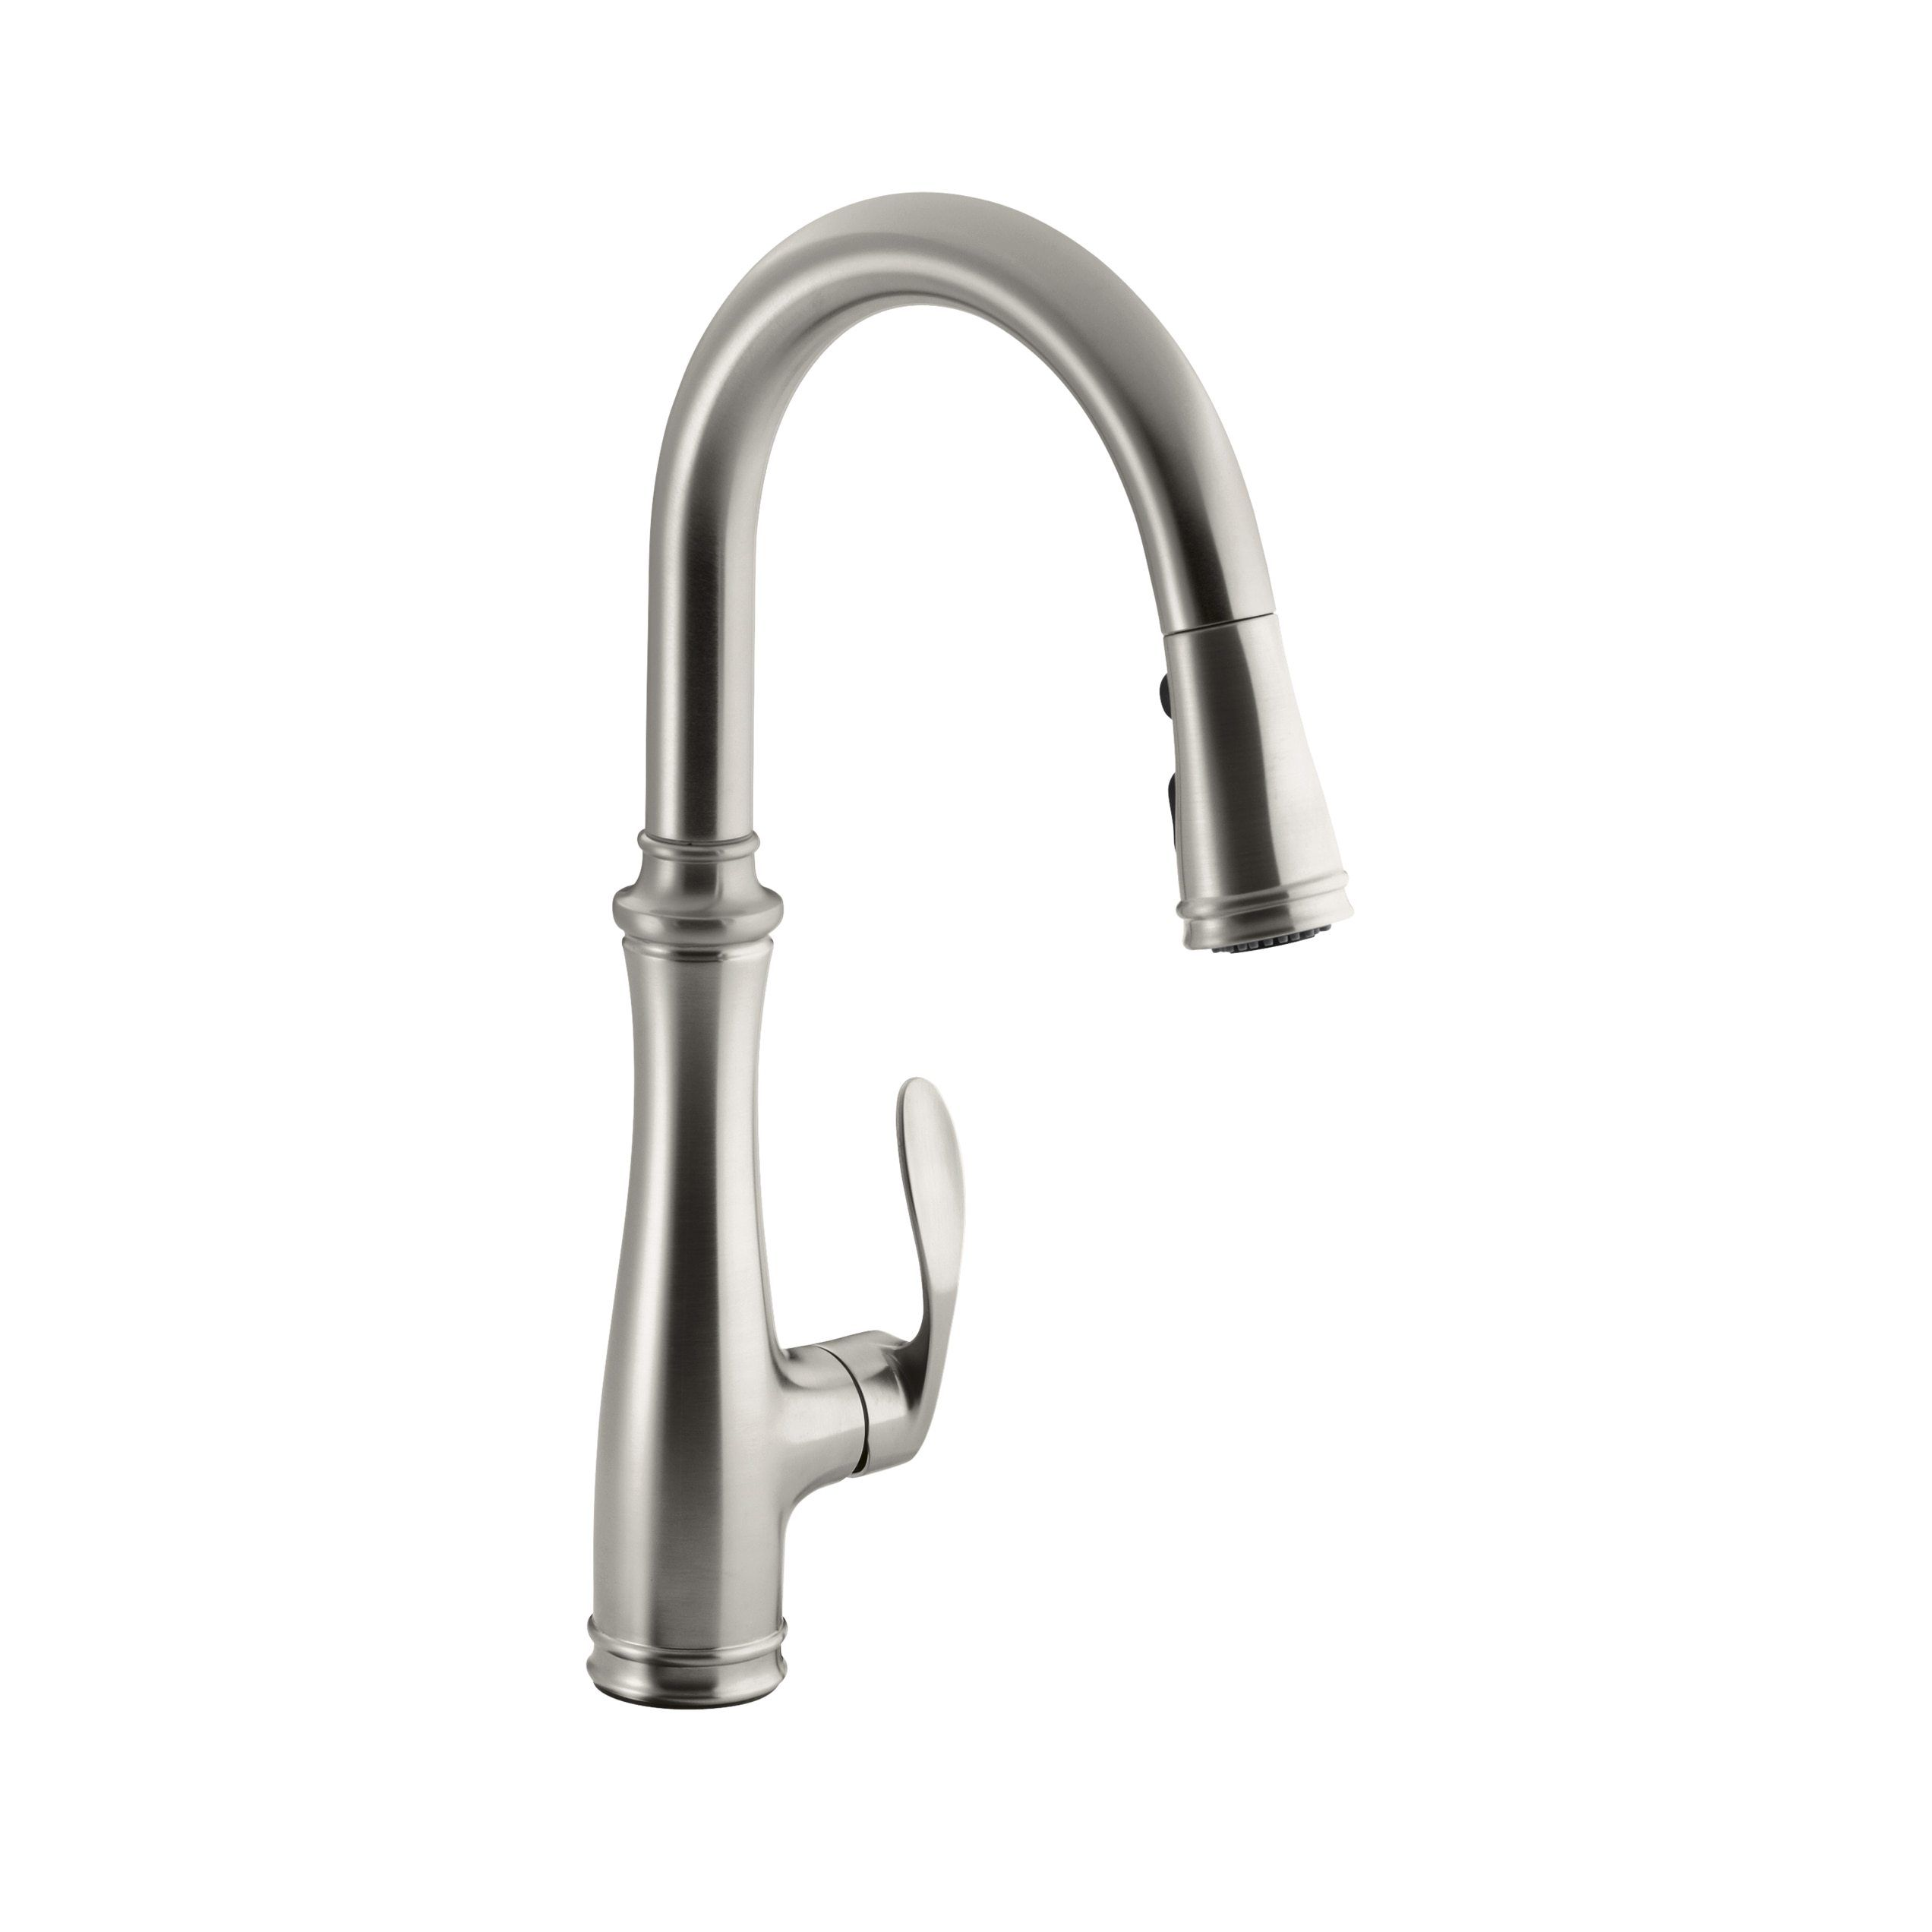 Kohler Kitchen Faucets Parts handle kitchen faucet repair kohler kitchen faucet parts fontaine